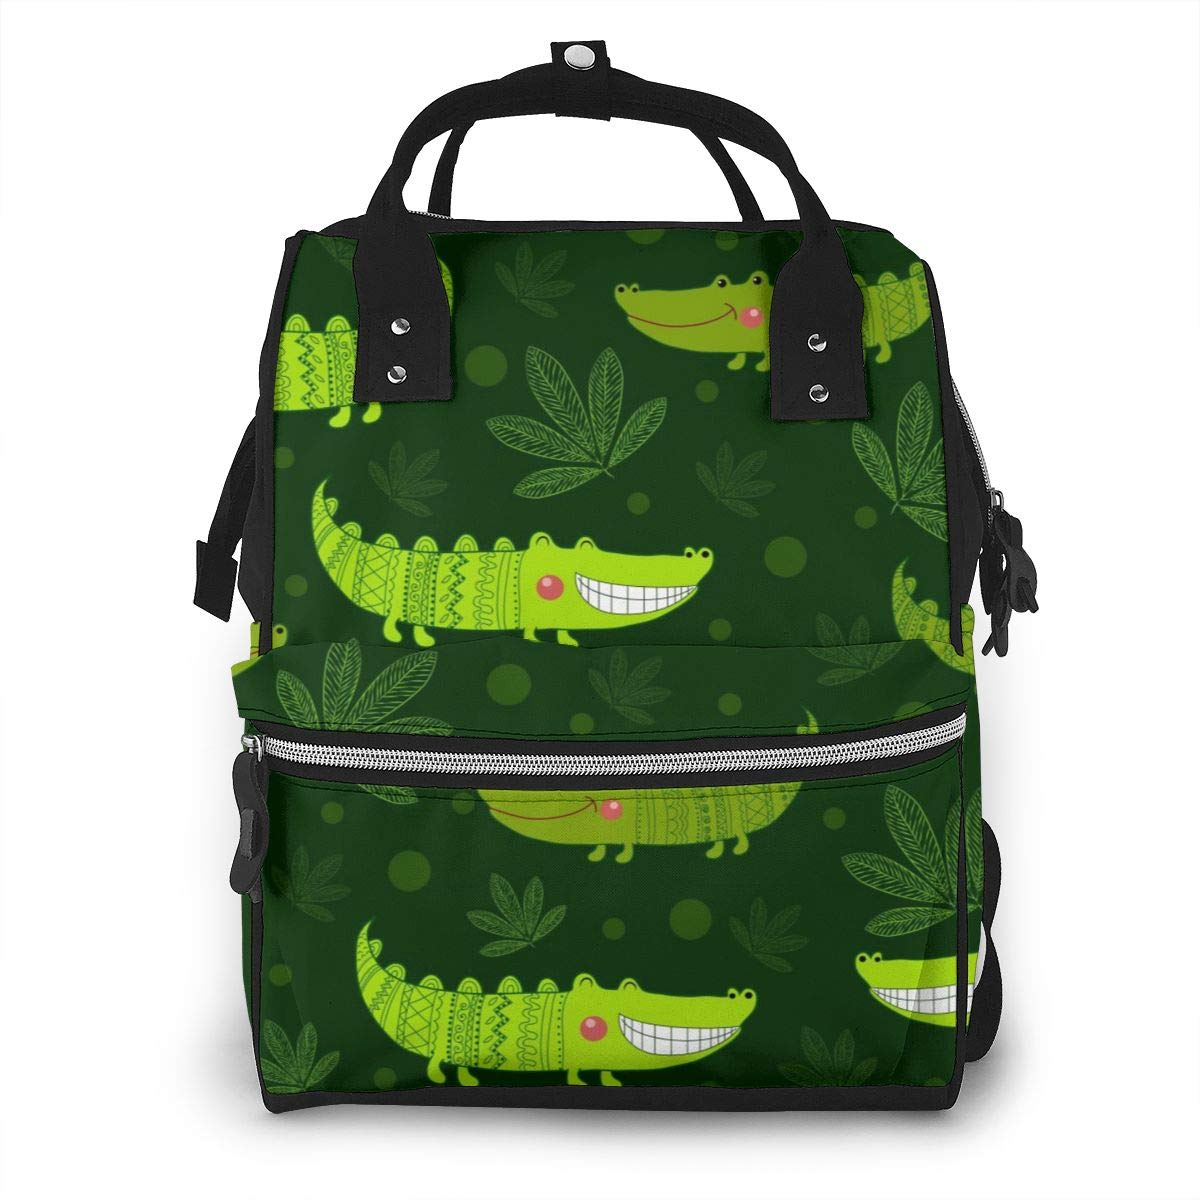 Cute Crocodile LeafDiaper Bag Bookbag School Shoulder Multi Functional Stylish Large Backpack Capacity Nappy Bags Mummy Durable Travel